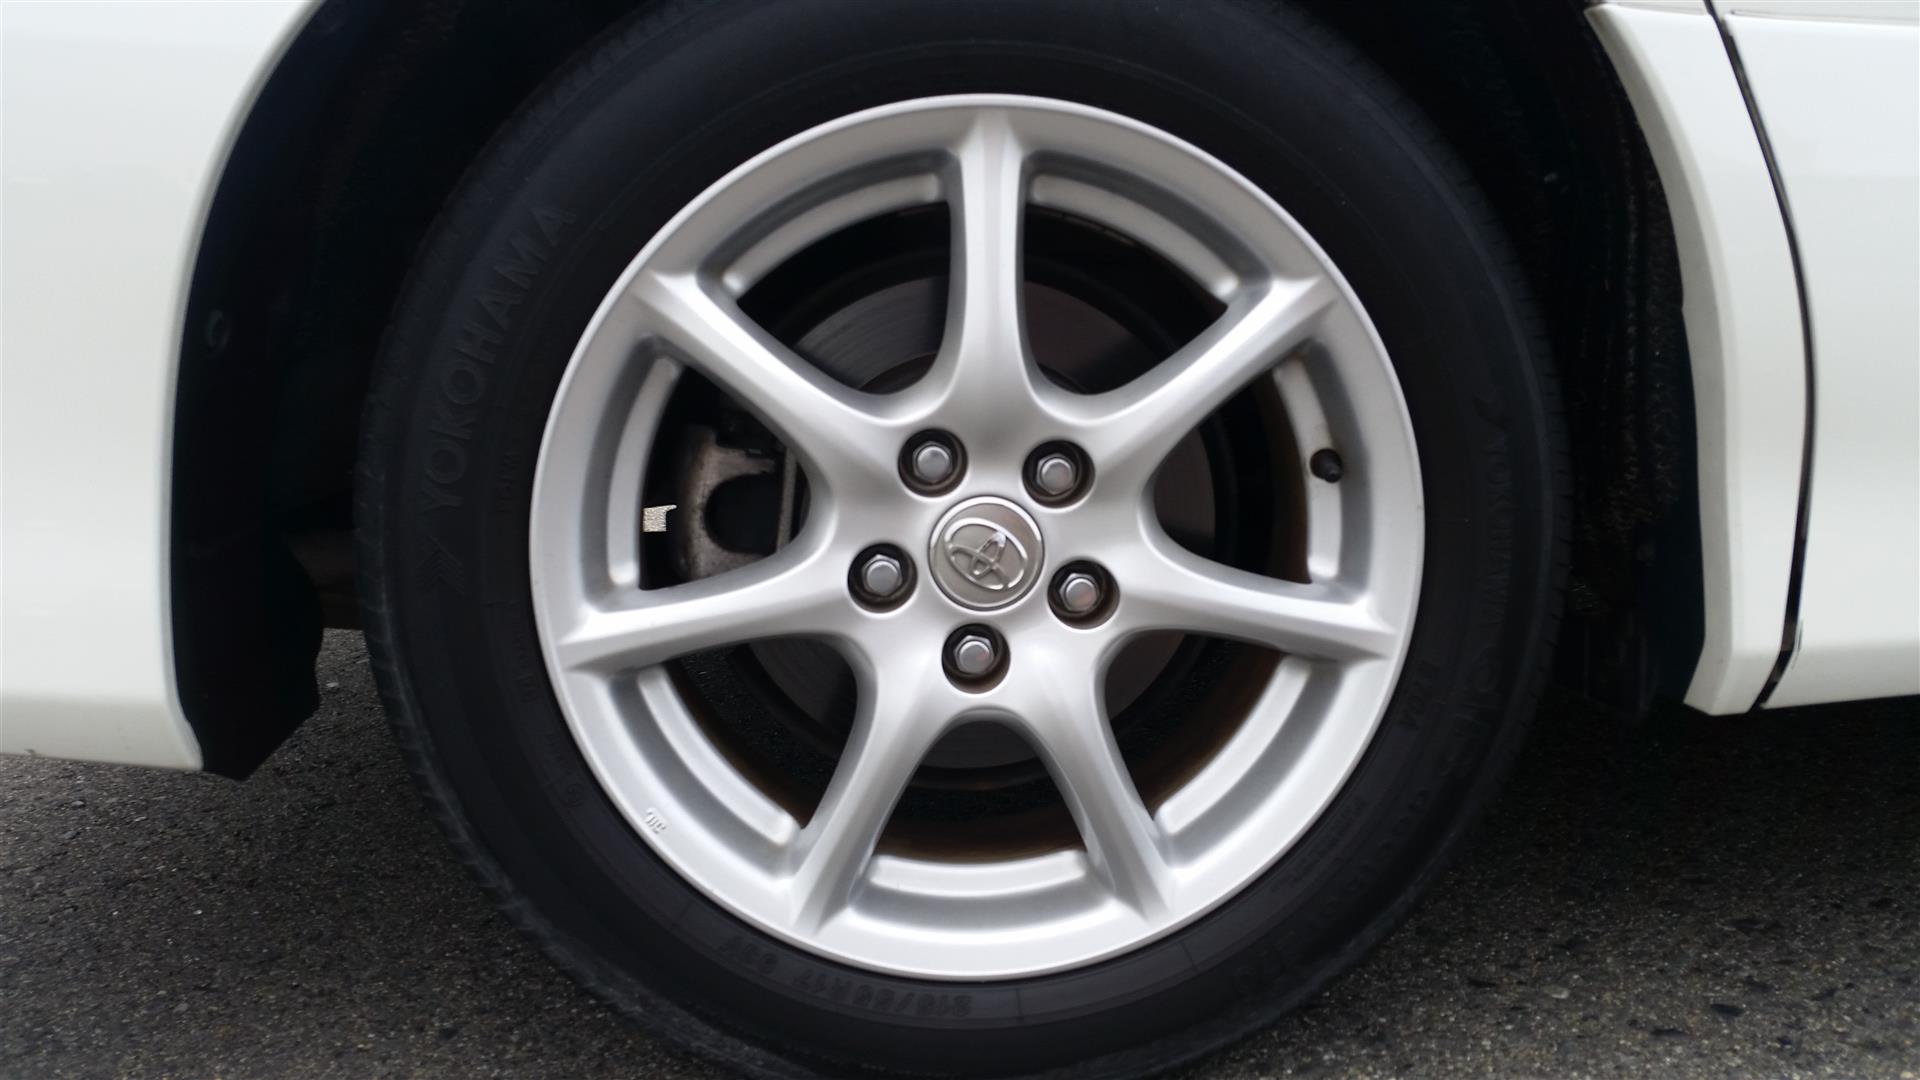 2008 Toyota Estima wheel